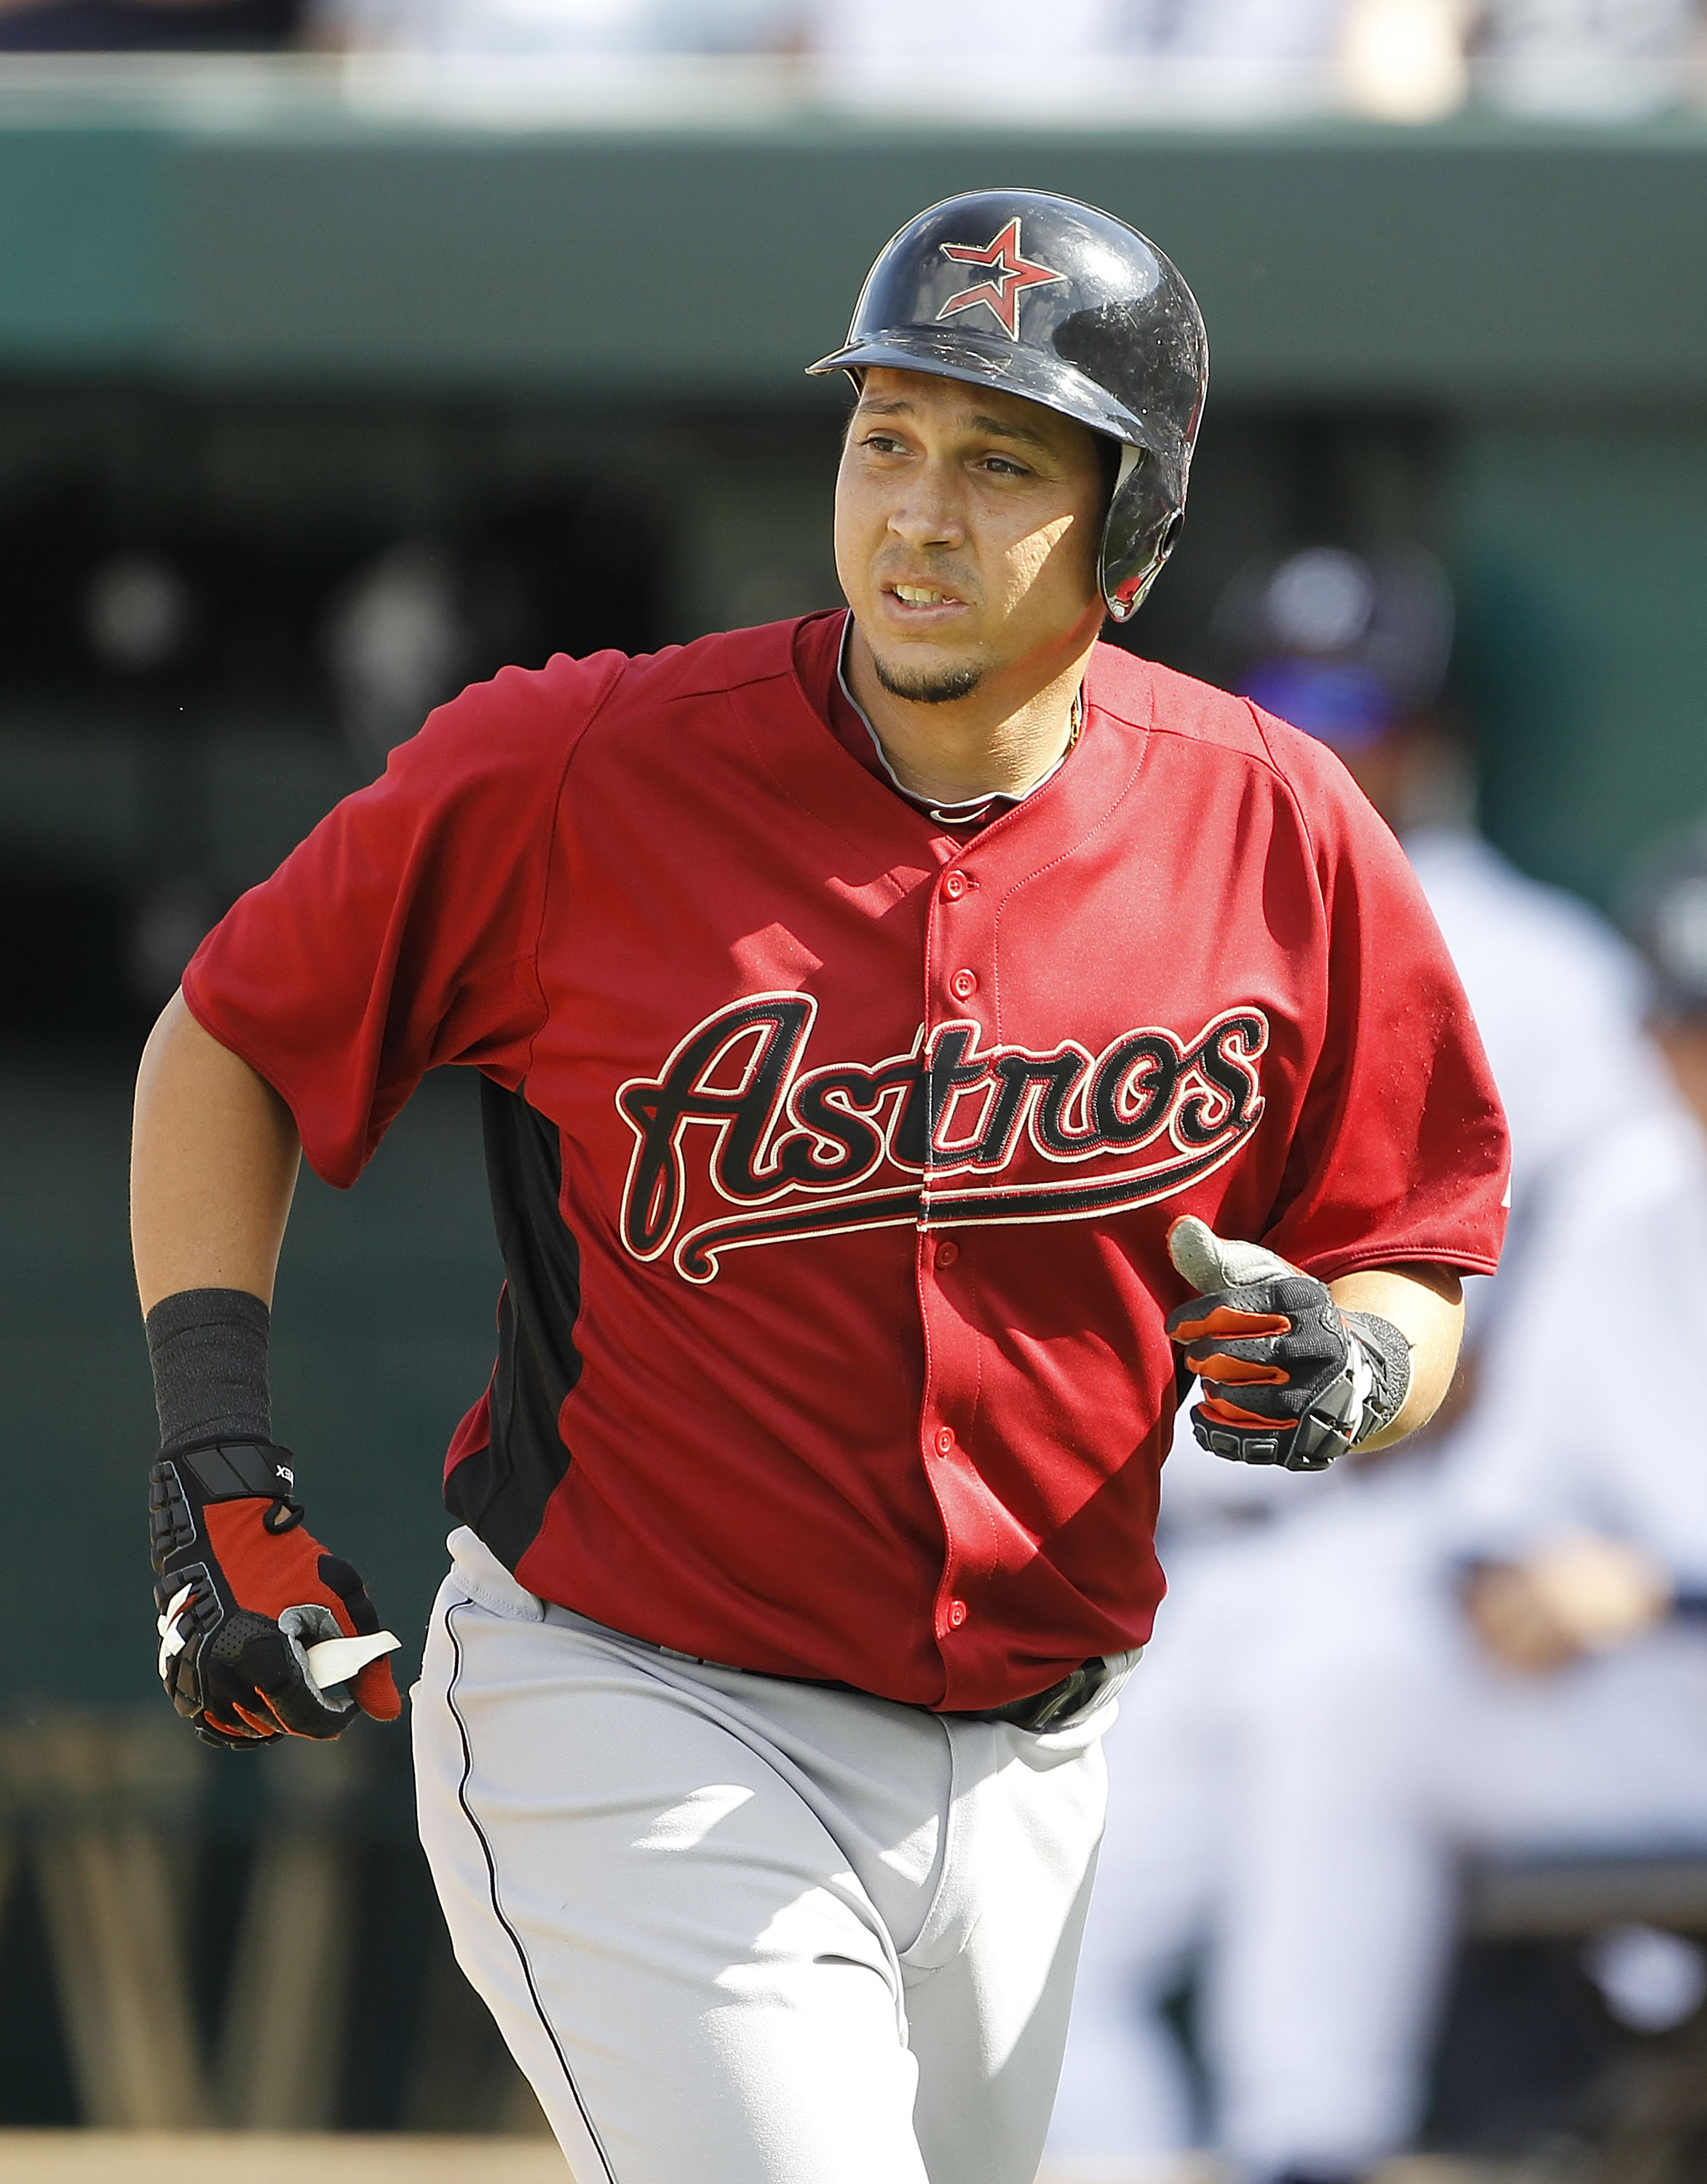 LAKELAND, FL - MARCH 02:  Oswaldo Navarro #26 of the Houston Astros looks to the dugout after hitting an eight inning three run home run during the game against the Detroit Tigers at Joker Marchant Stadium on March 2, 2011 in Lakeland, Florida. The Astros